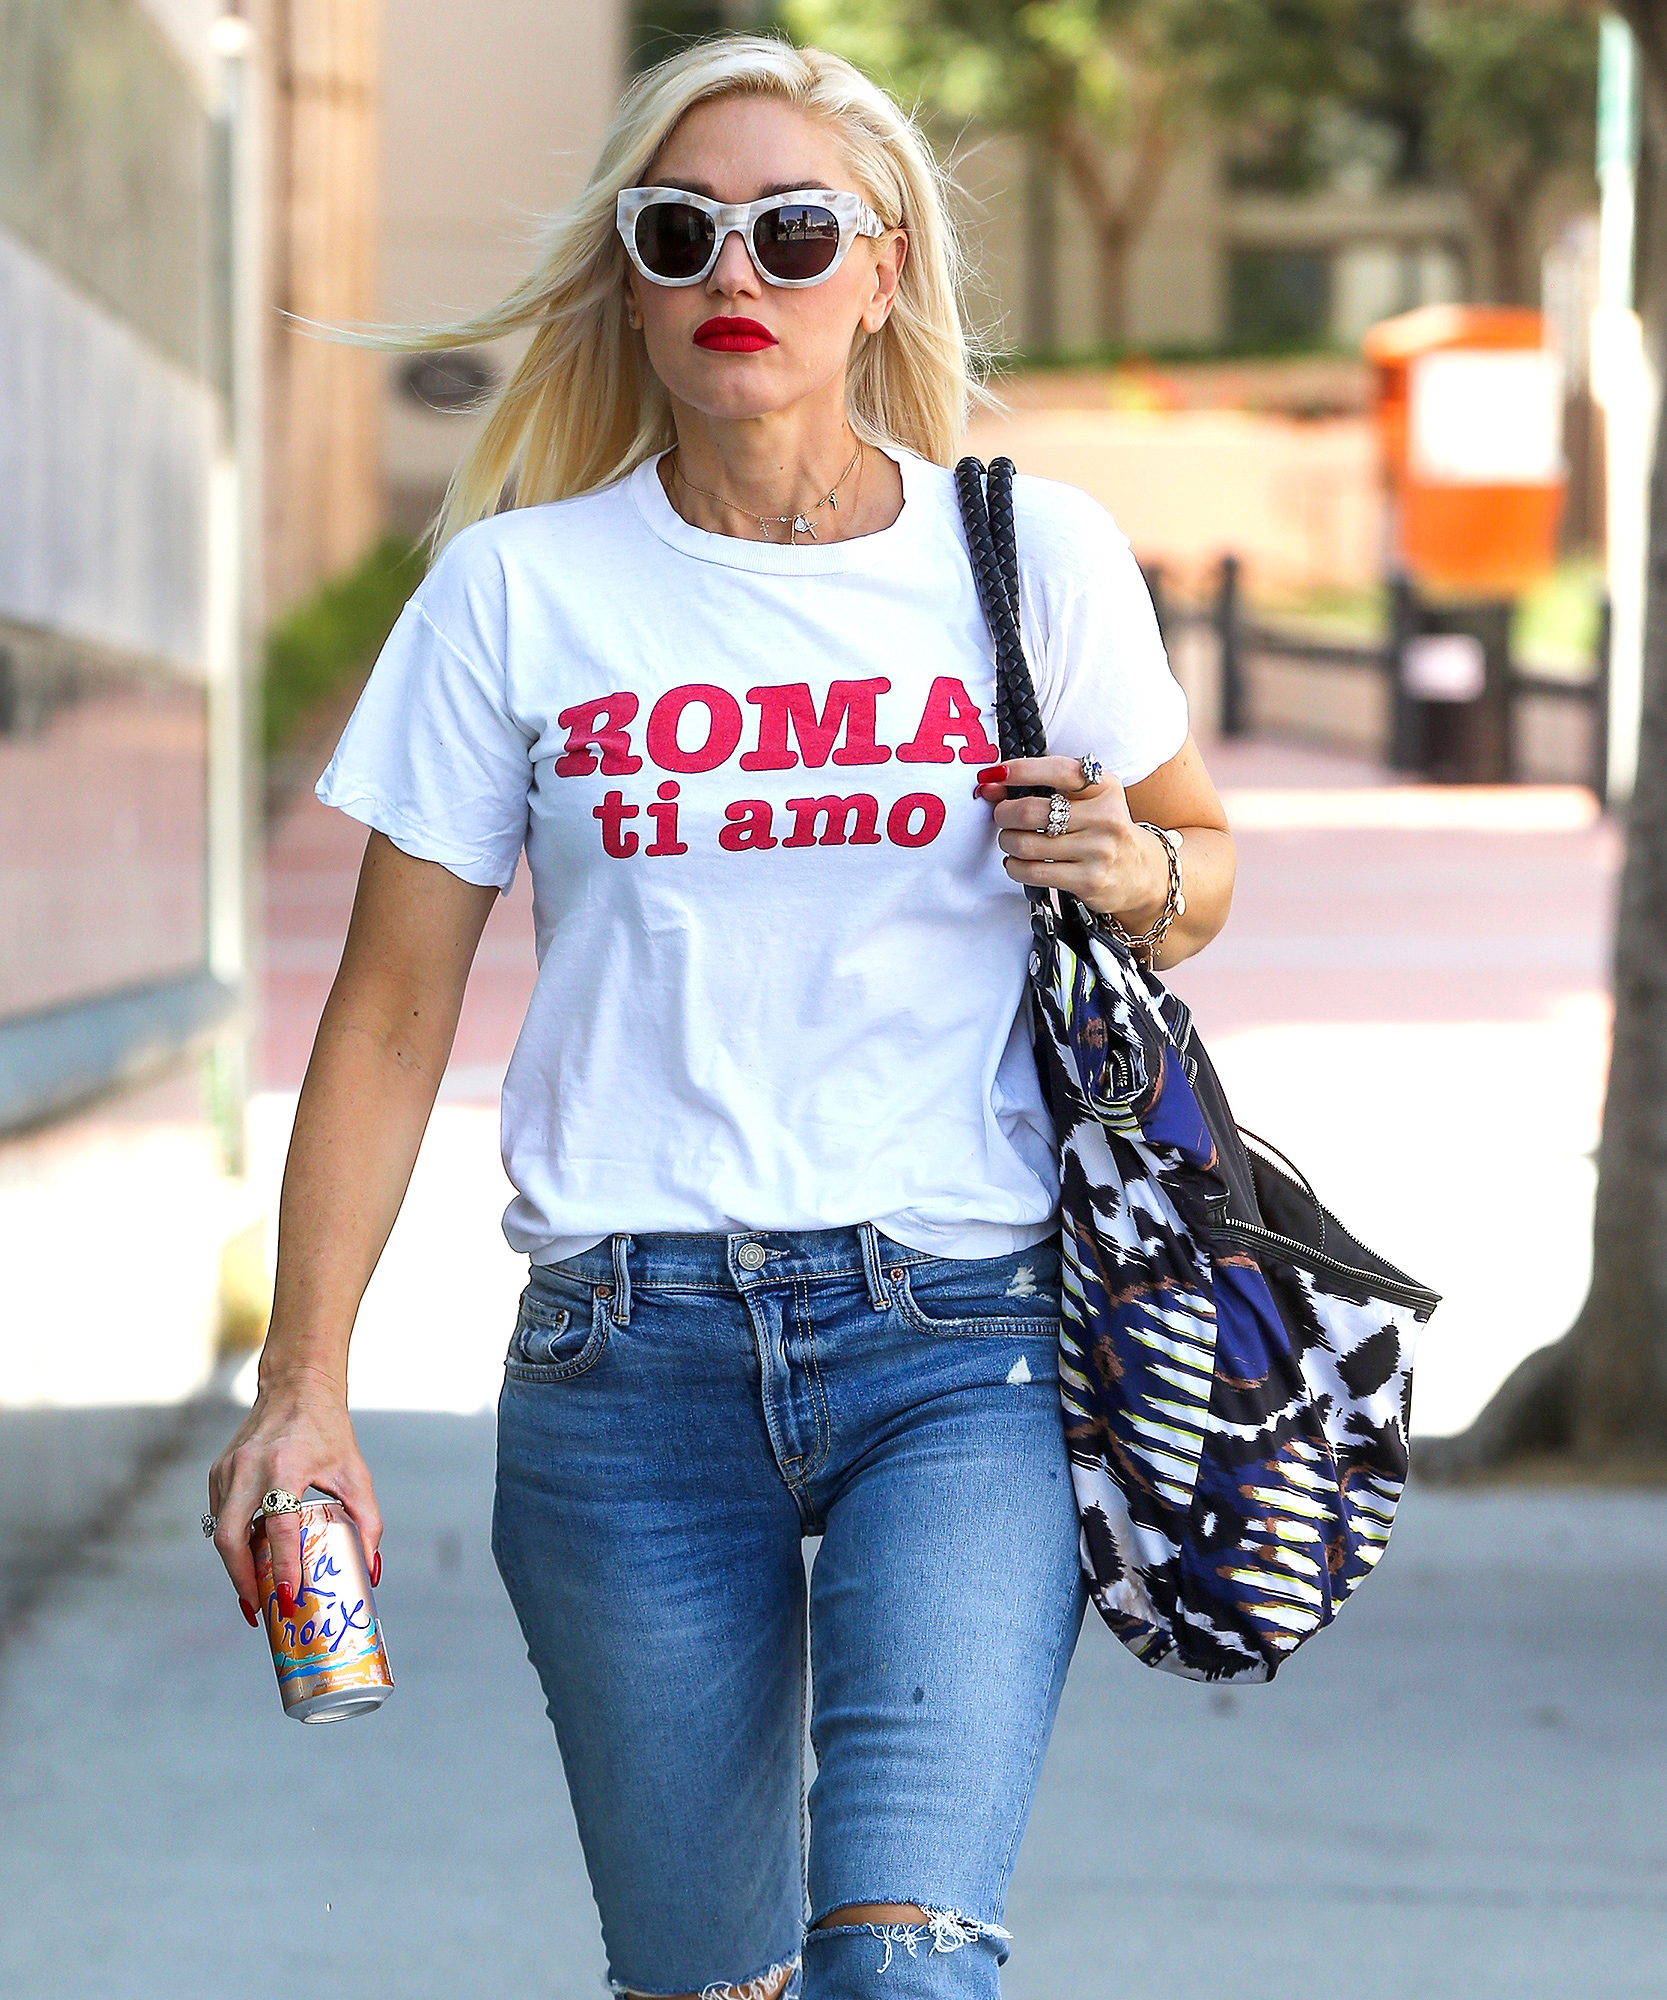 Gwen Stefani Shows her Love for Rome in a Roma ti Amo Shirt